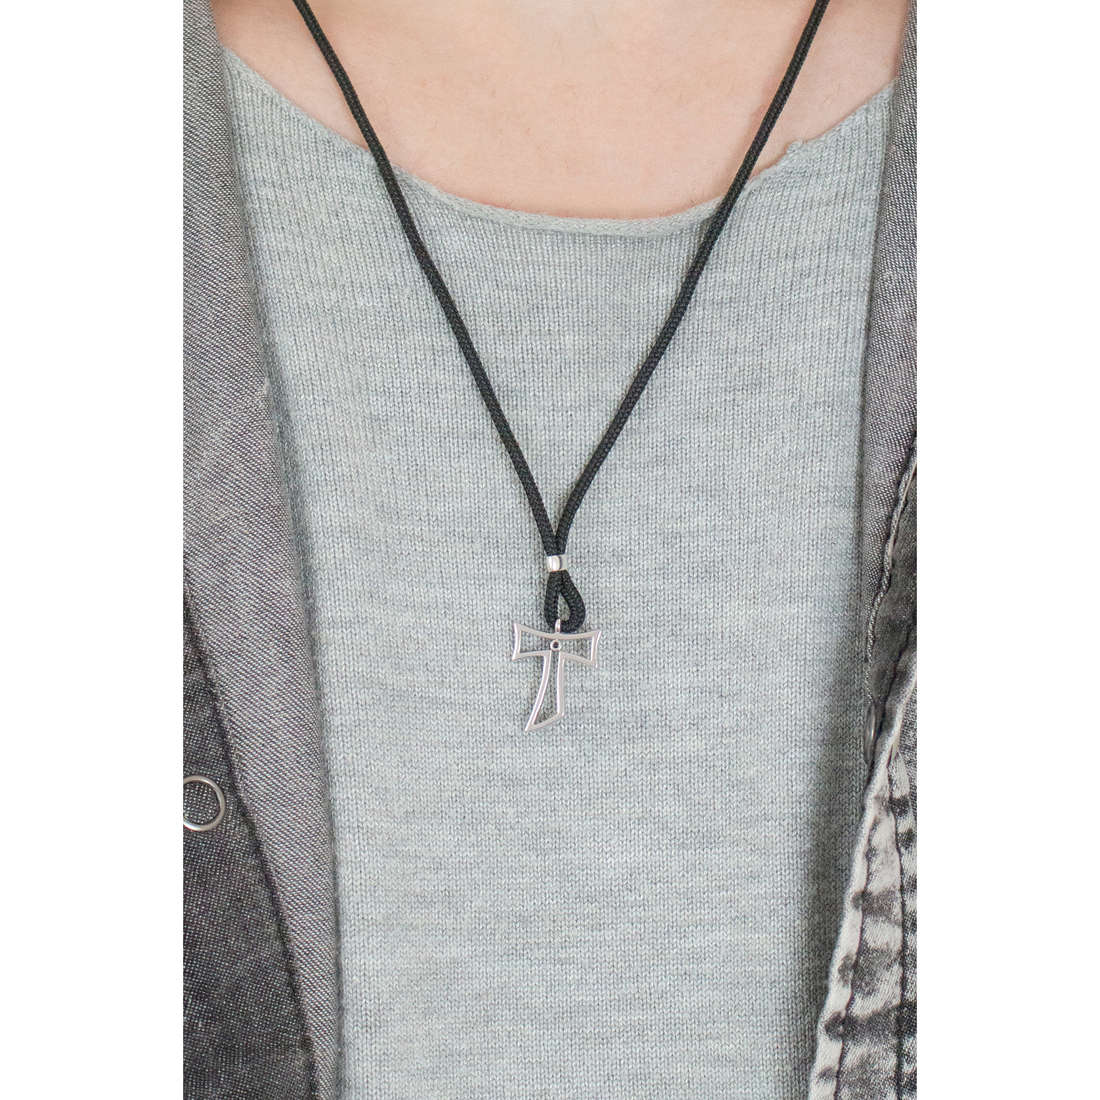 Comete necklaces Holy man UGL 493 photo wearing